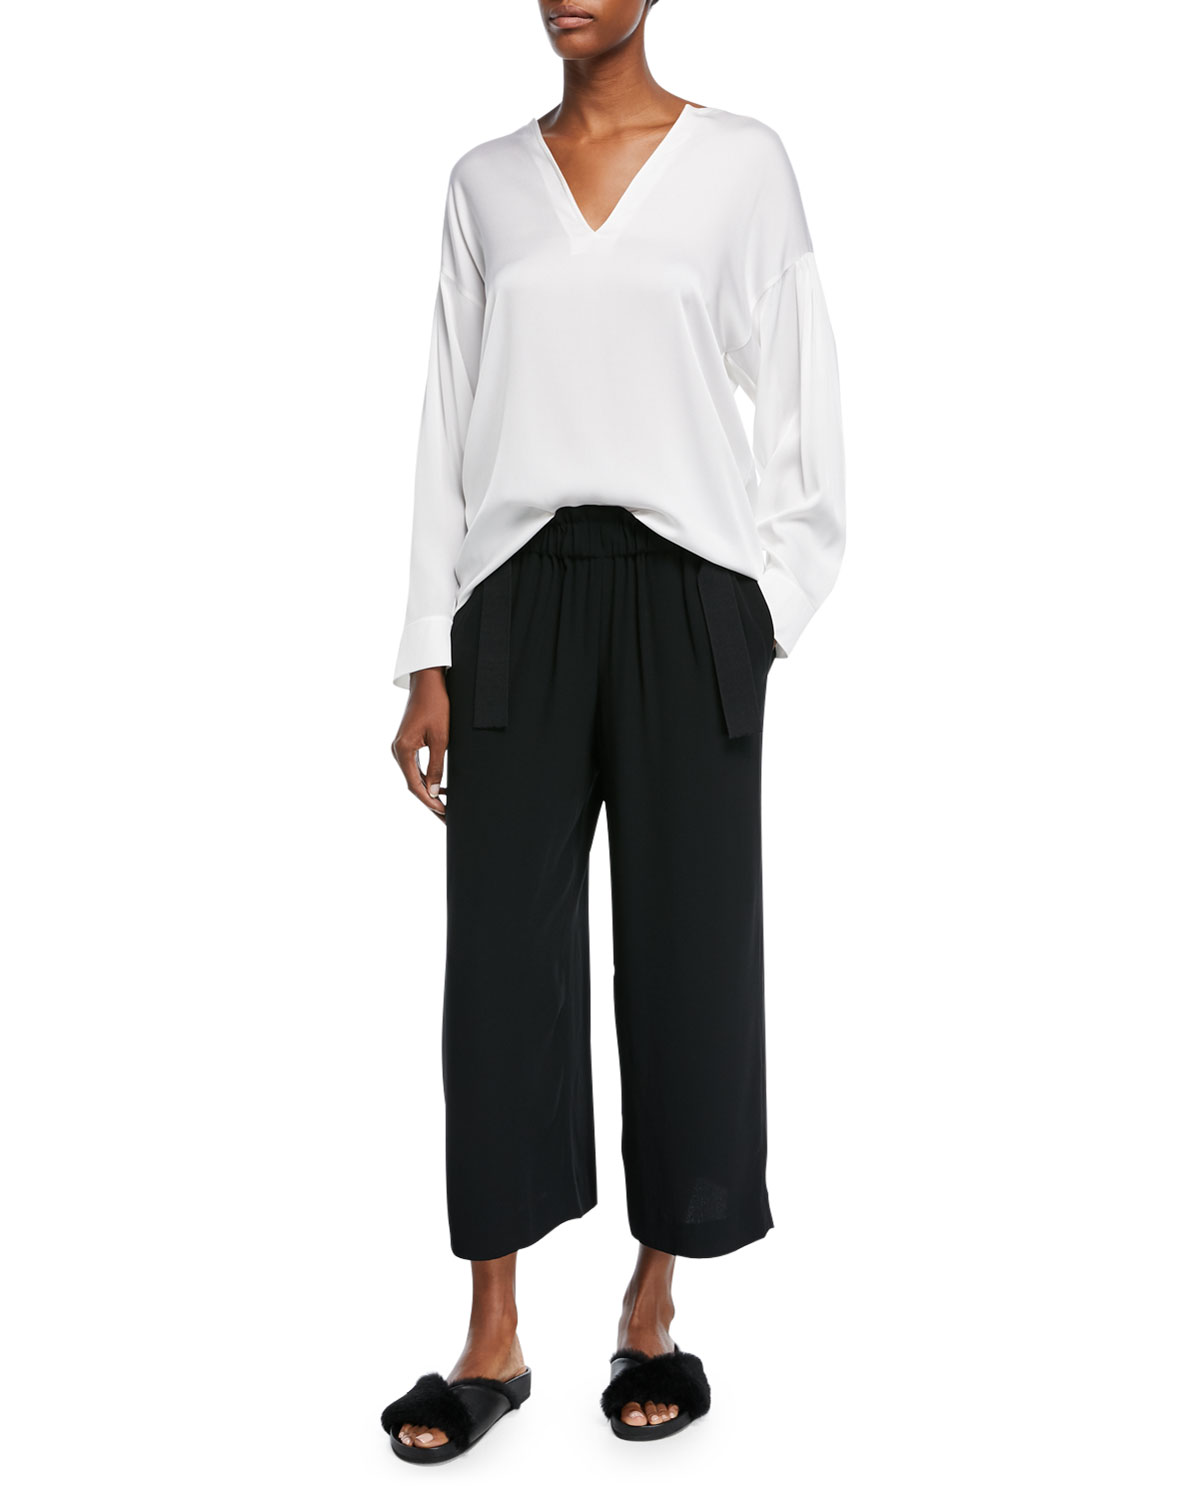 Cinched Waist Crepe Ankle Culottes